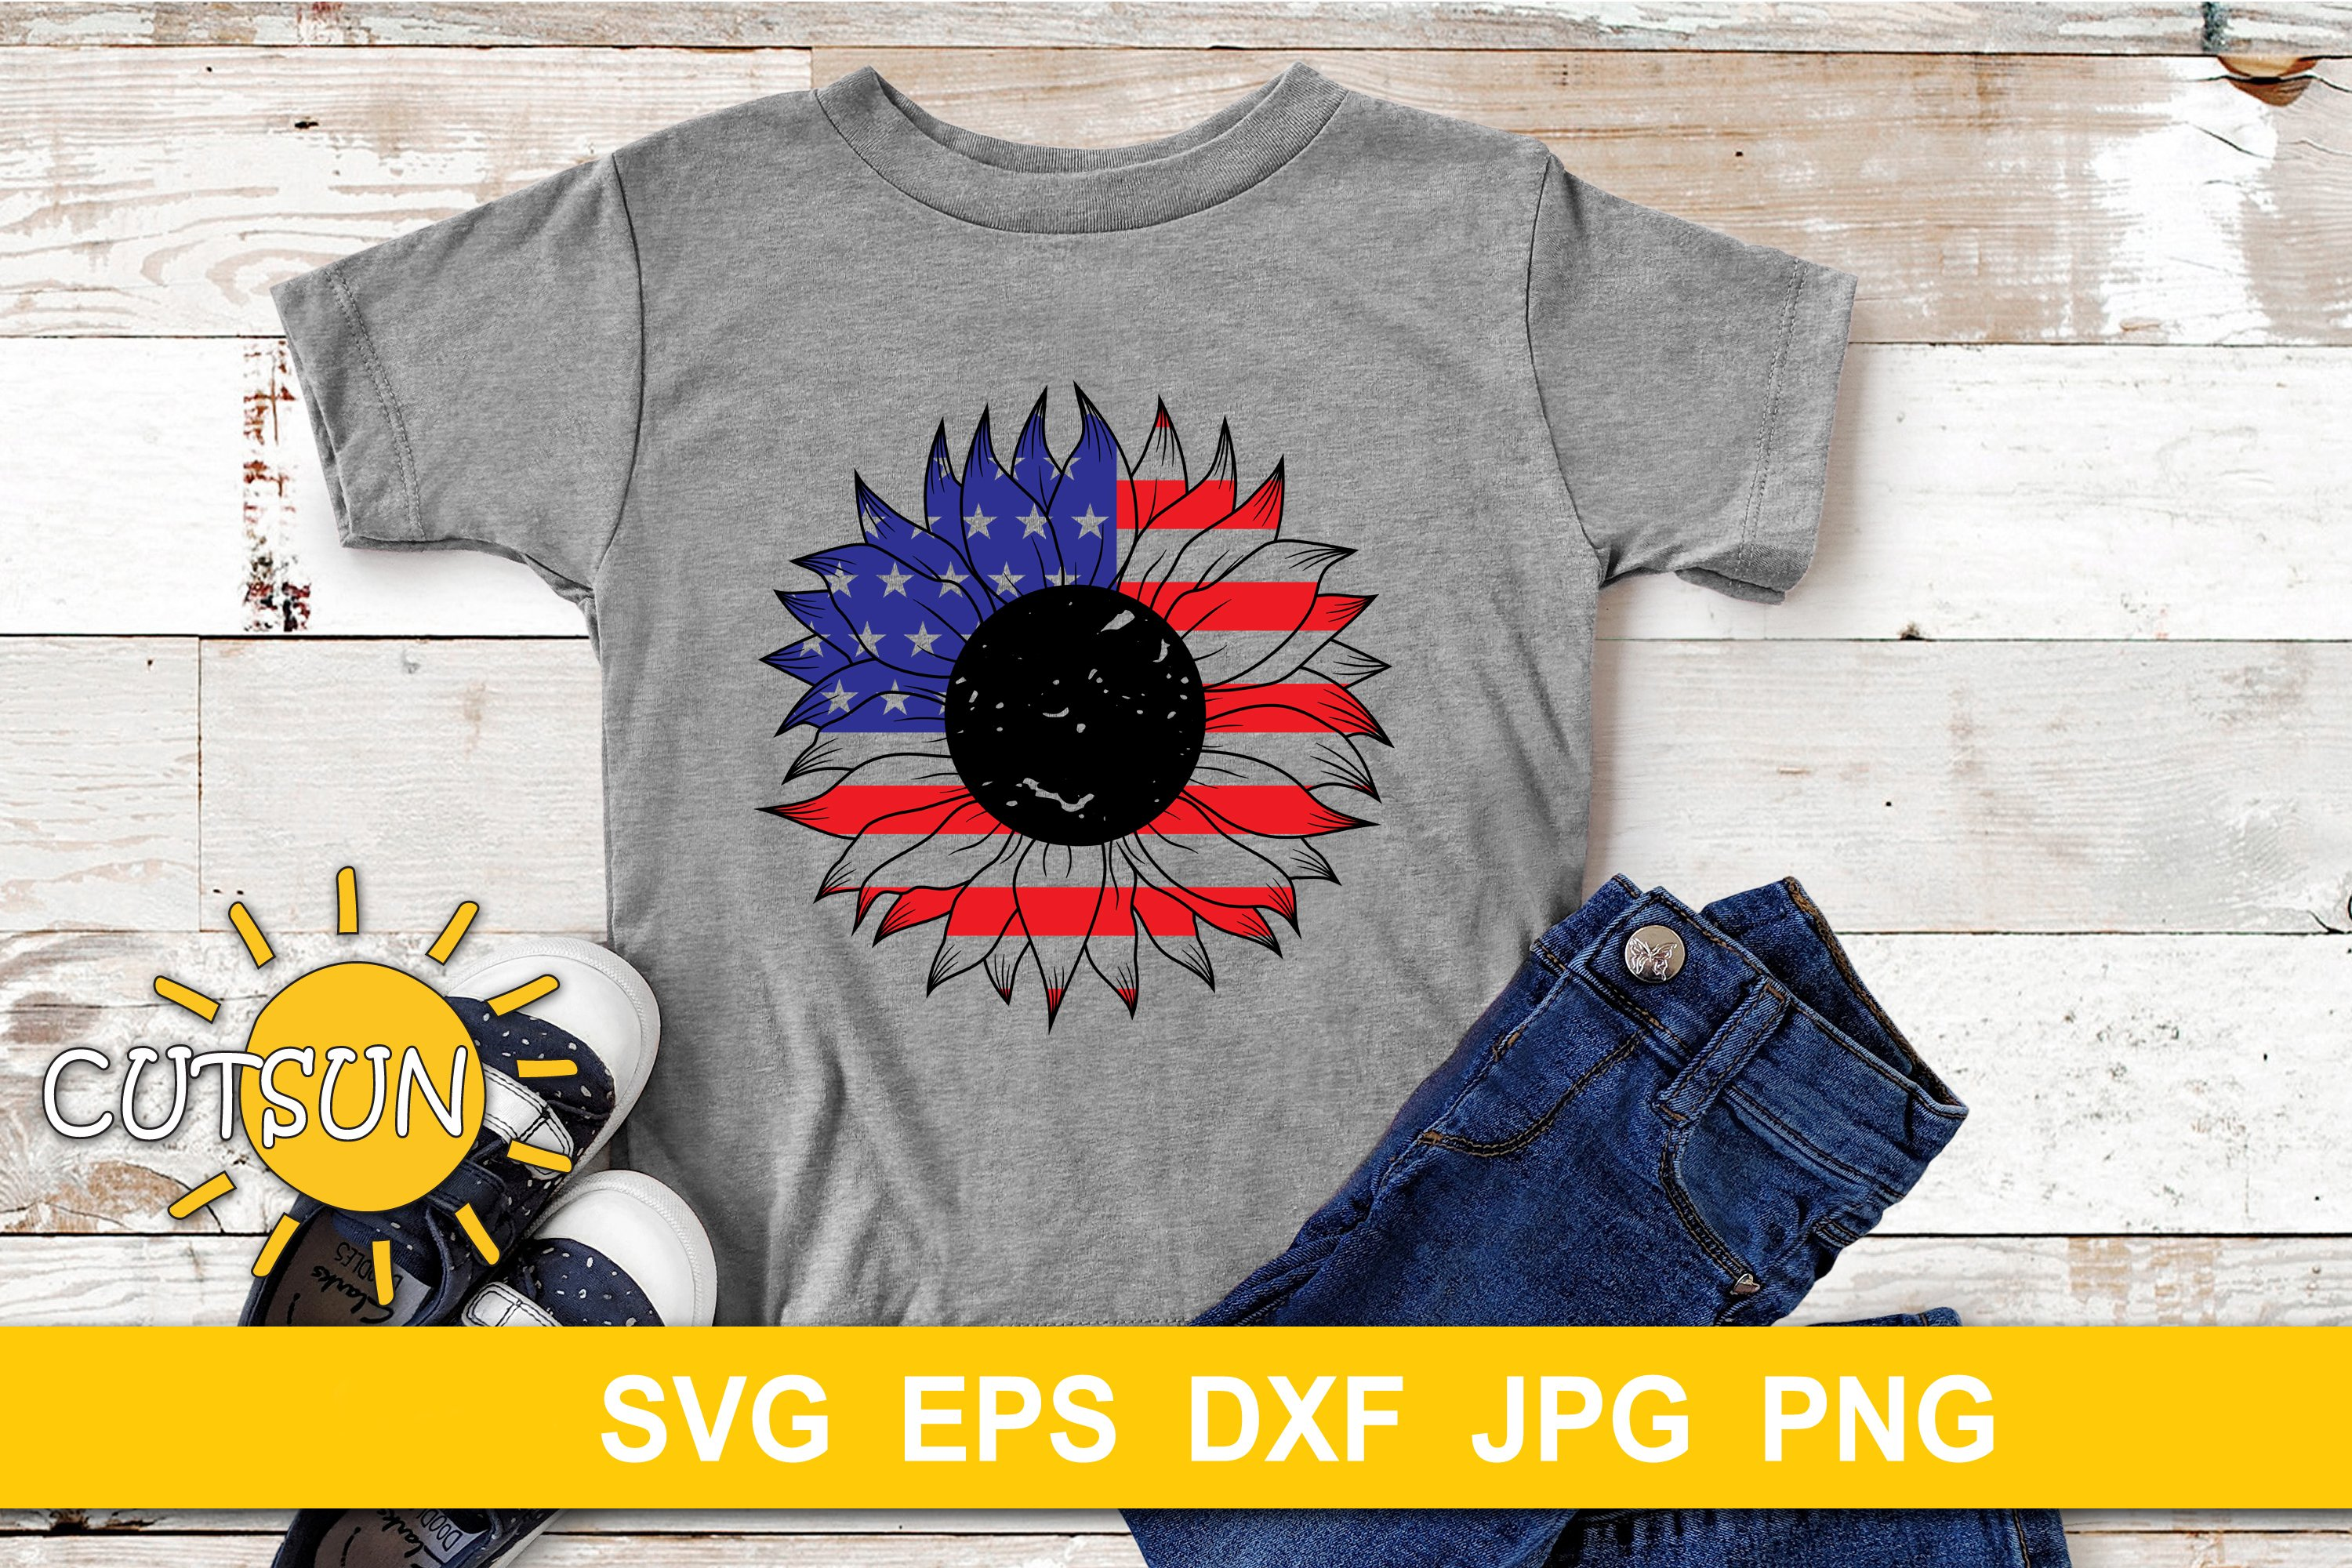 USA Sunflower SVG cut file example image 3